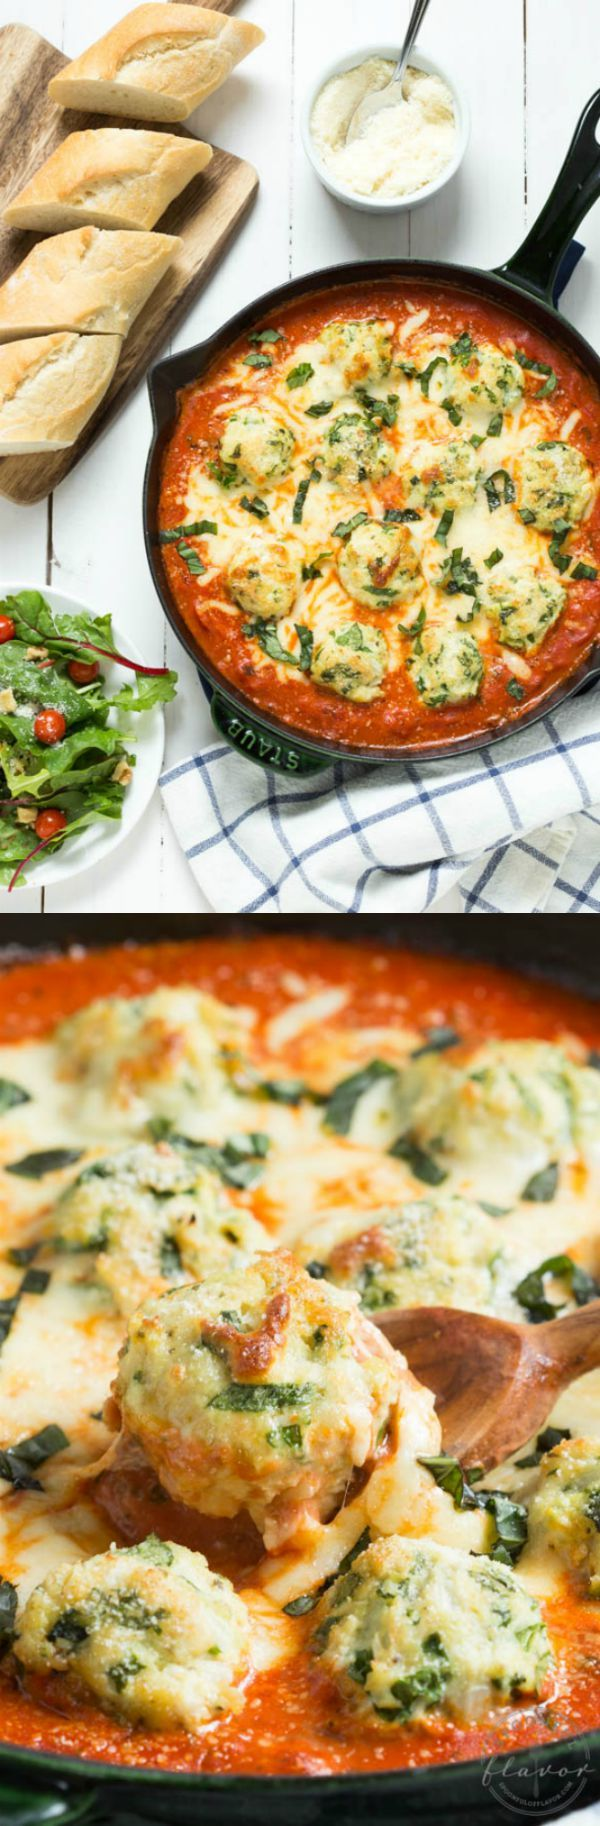 Spinach Chicken Parmesan Meat In Creamy Tomato Sauce